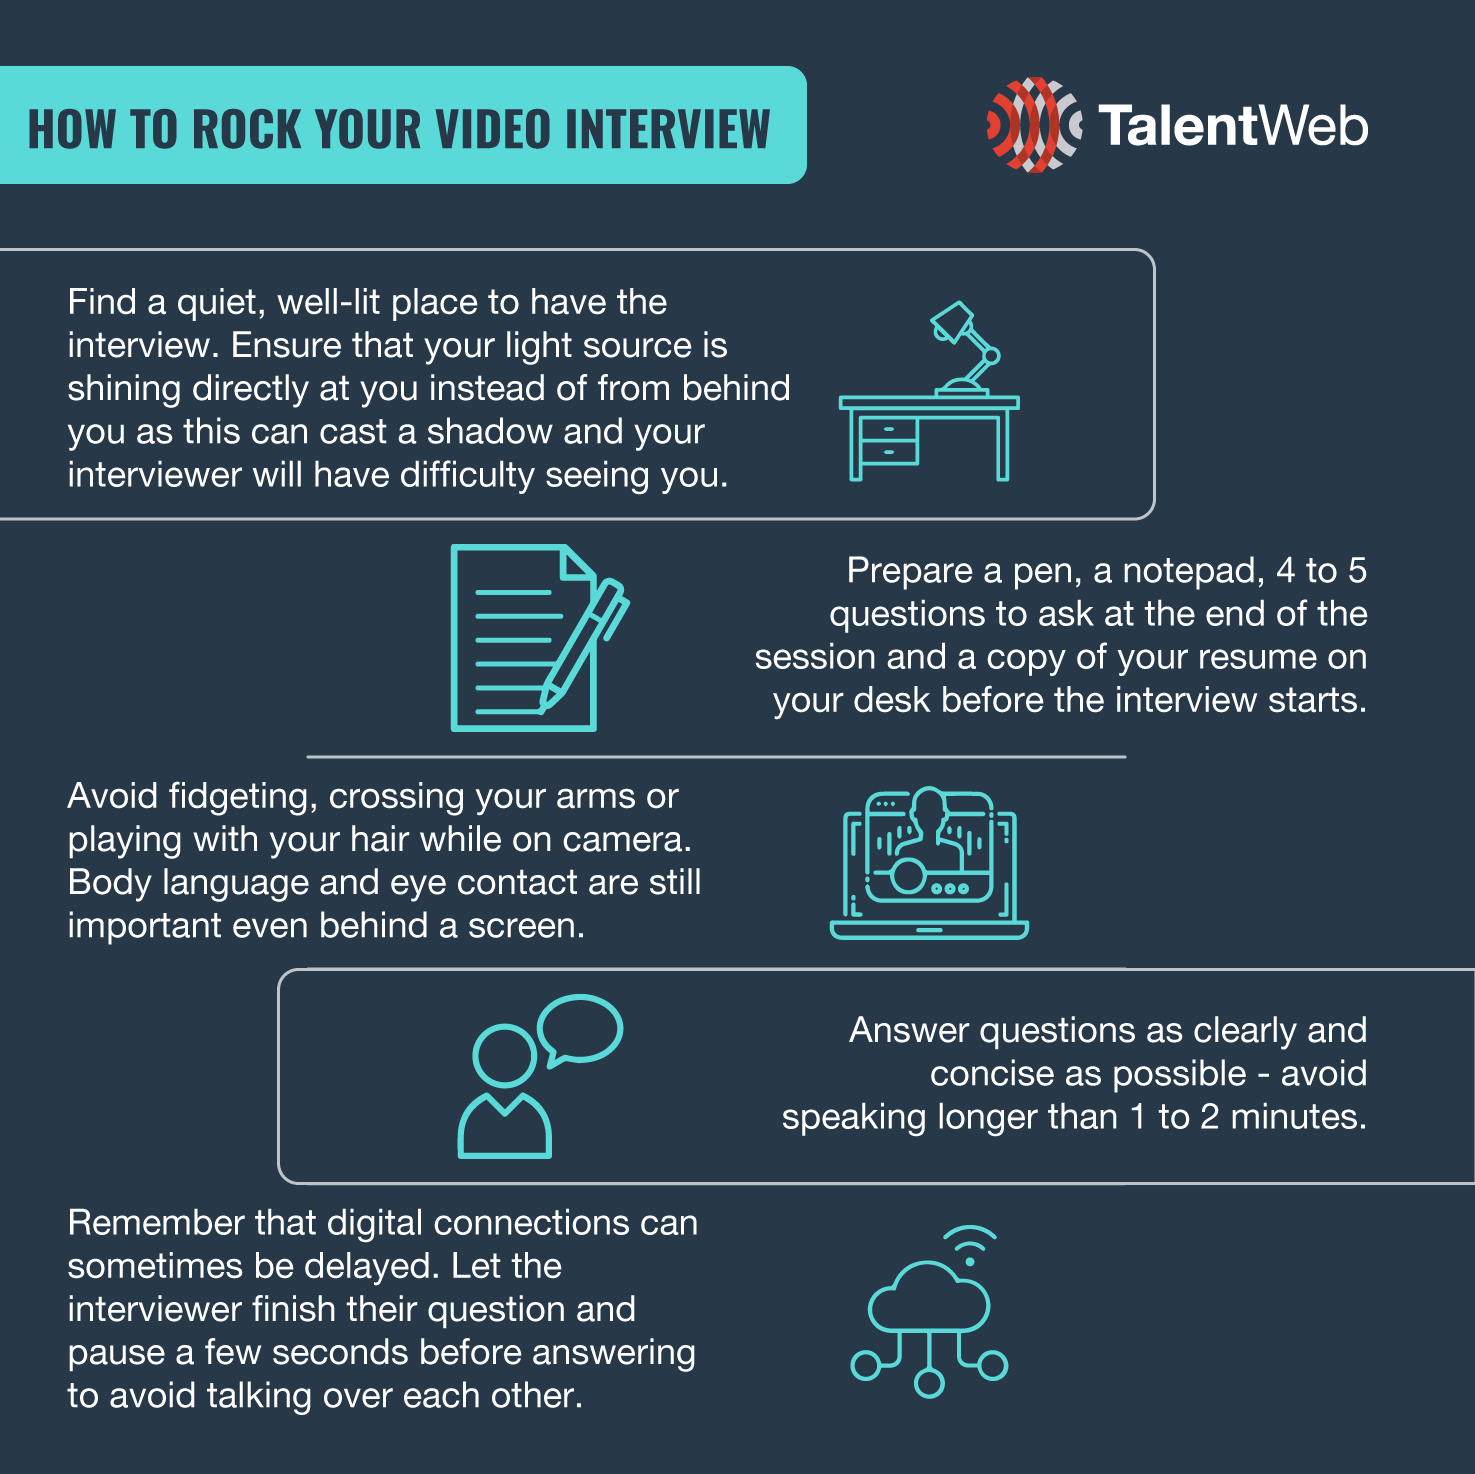 How to Rock Your Video Interview